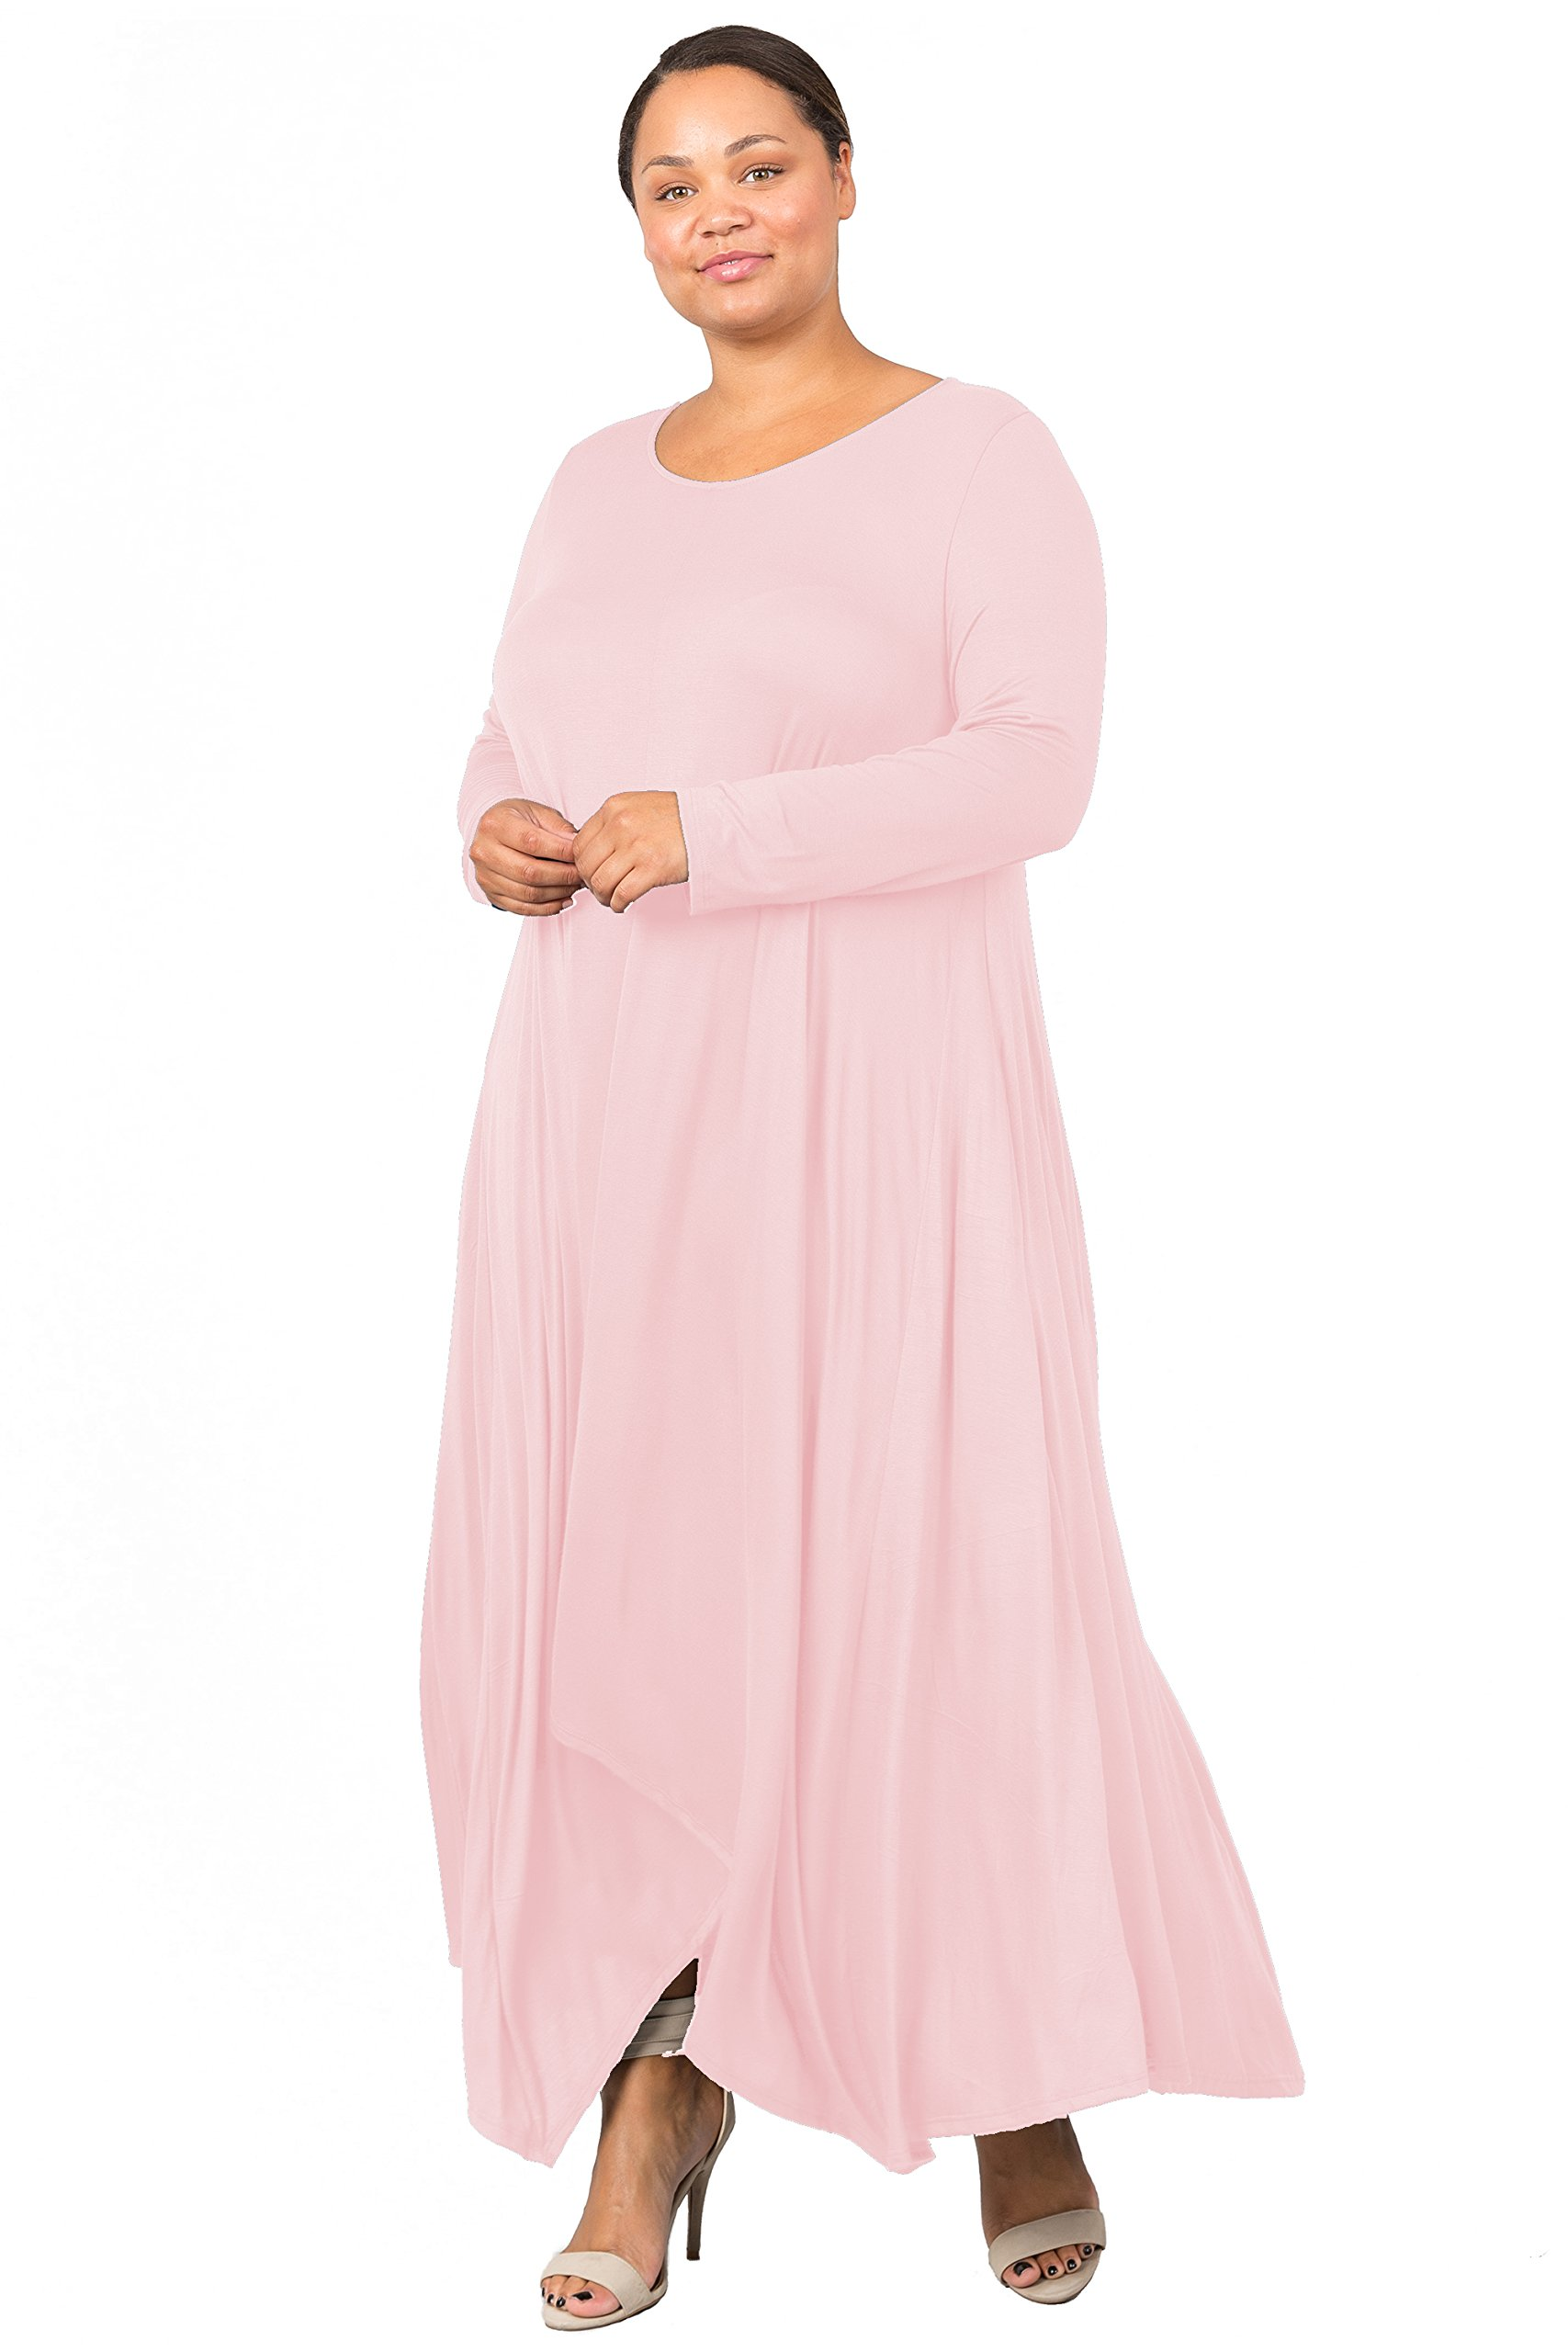 Love In D6190C-PX Long Sleeve Round Neck Flared Maxi Dress W/Pocket Blush 3X